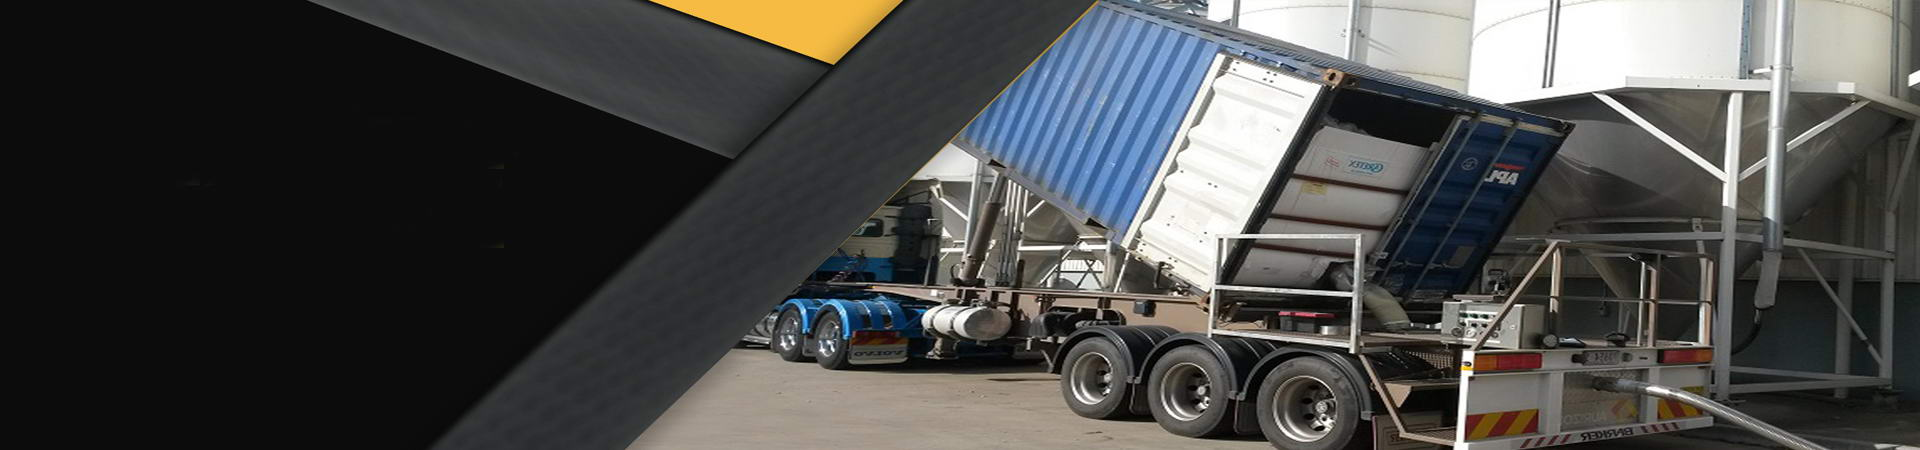 Container liners - Caretex